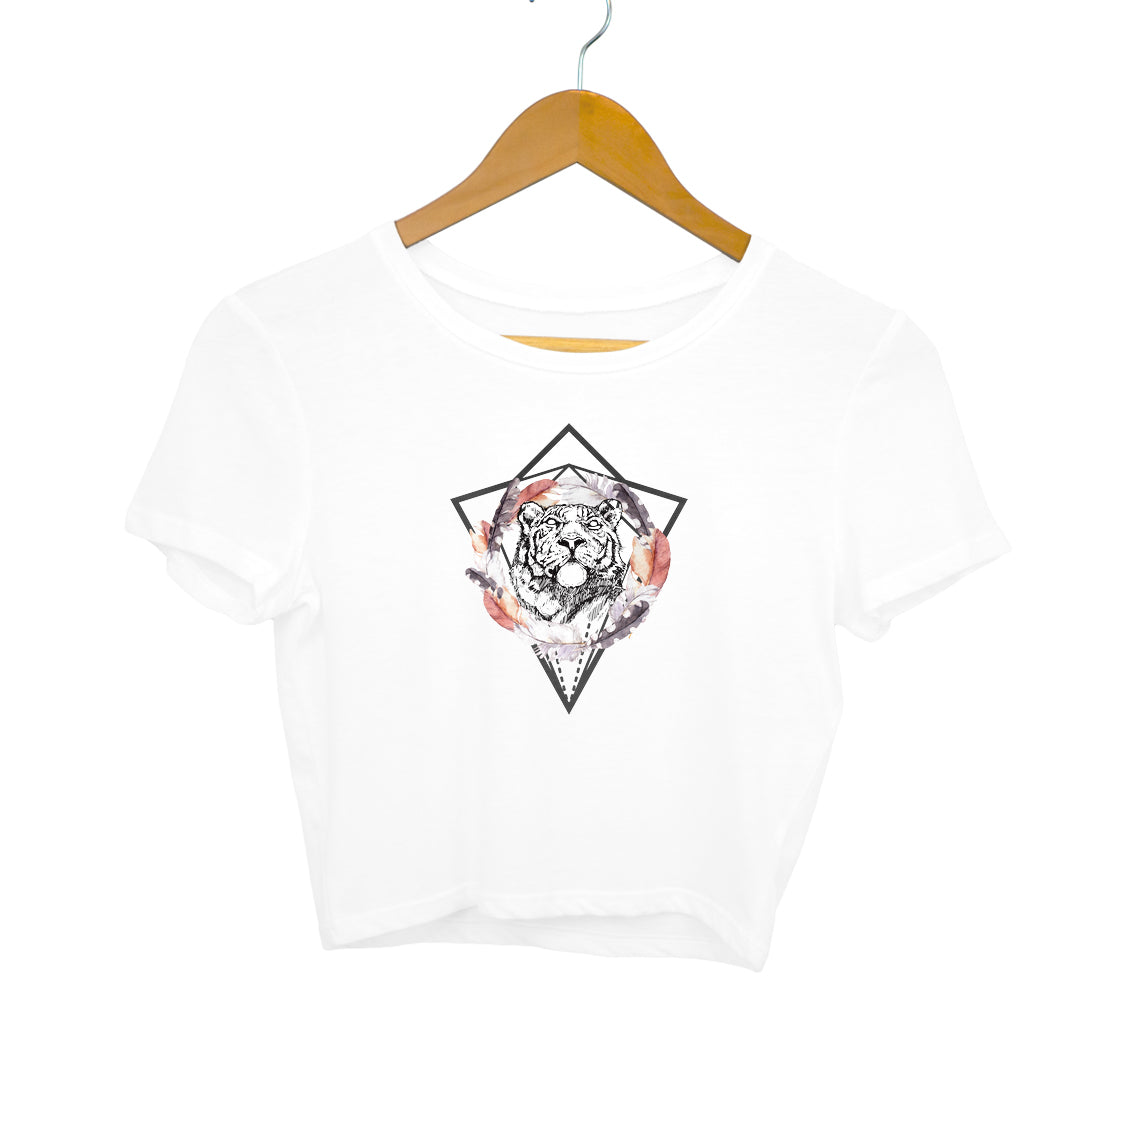 Baromin Printed Crop Tops - Tiger Catcher